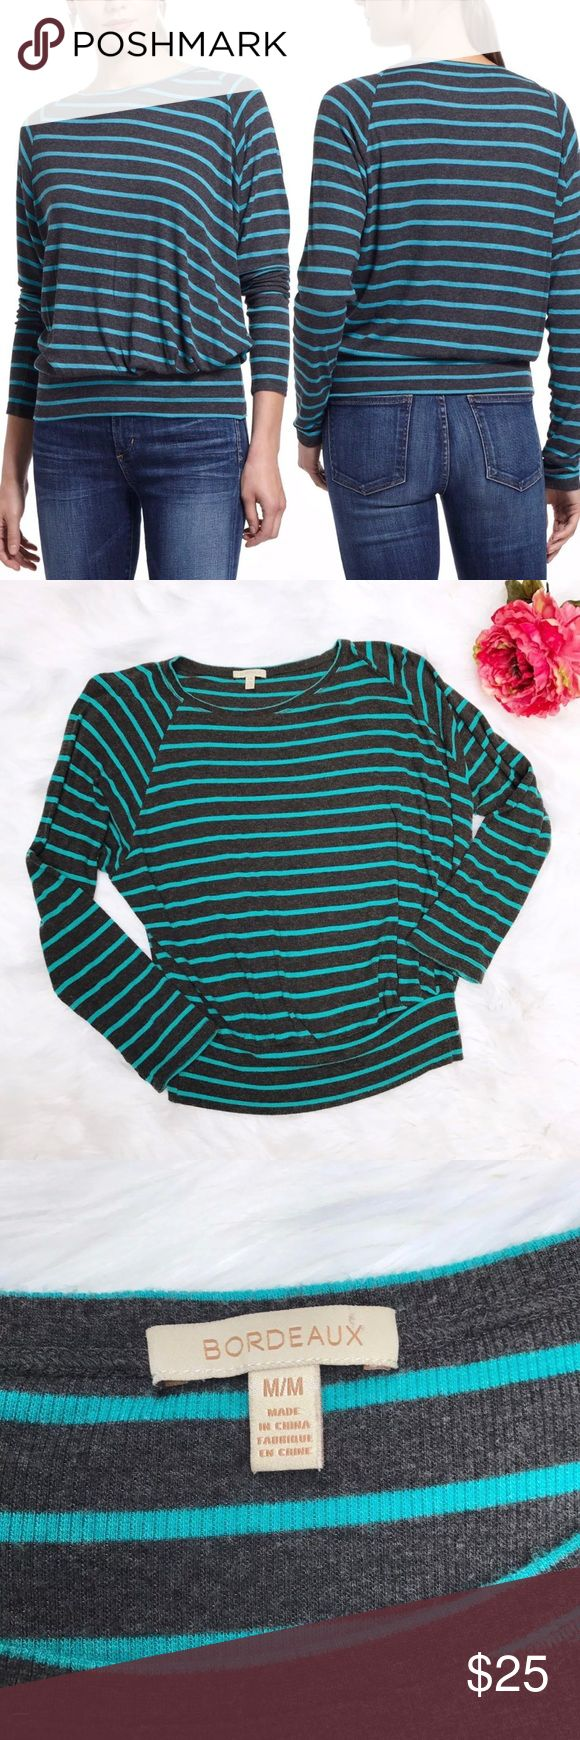 Anthropologie Striped Thin Ribbed Boat Neck Top Thin ribbed boat neck top with teal stripes. SO soft with a flattering cut! Brand is Bordeaux for Anthropologie. Anthropologie Tops Tees - Long Sleeve